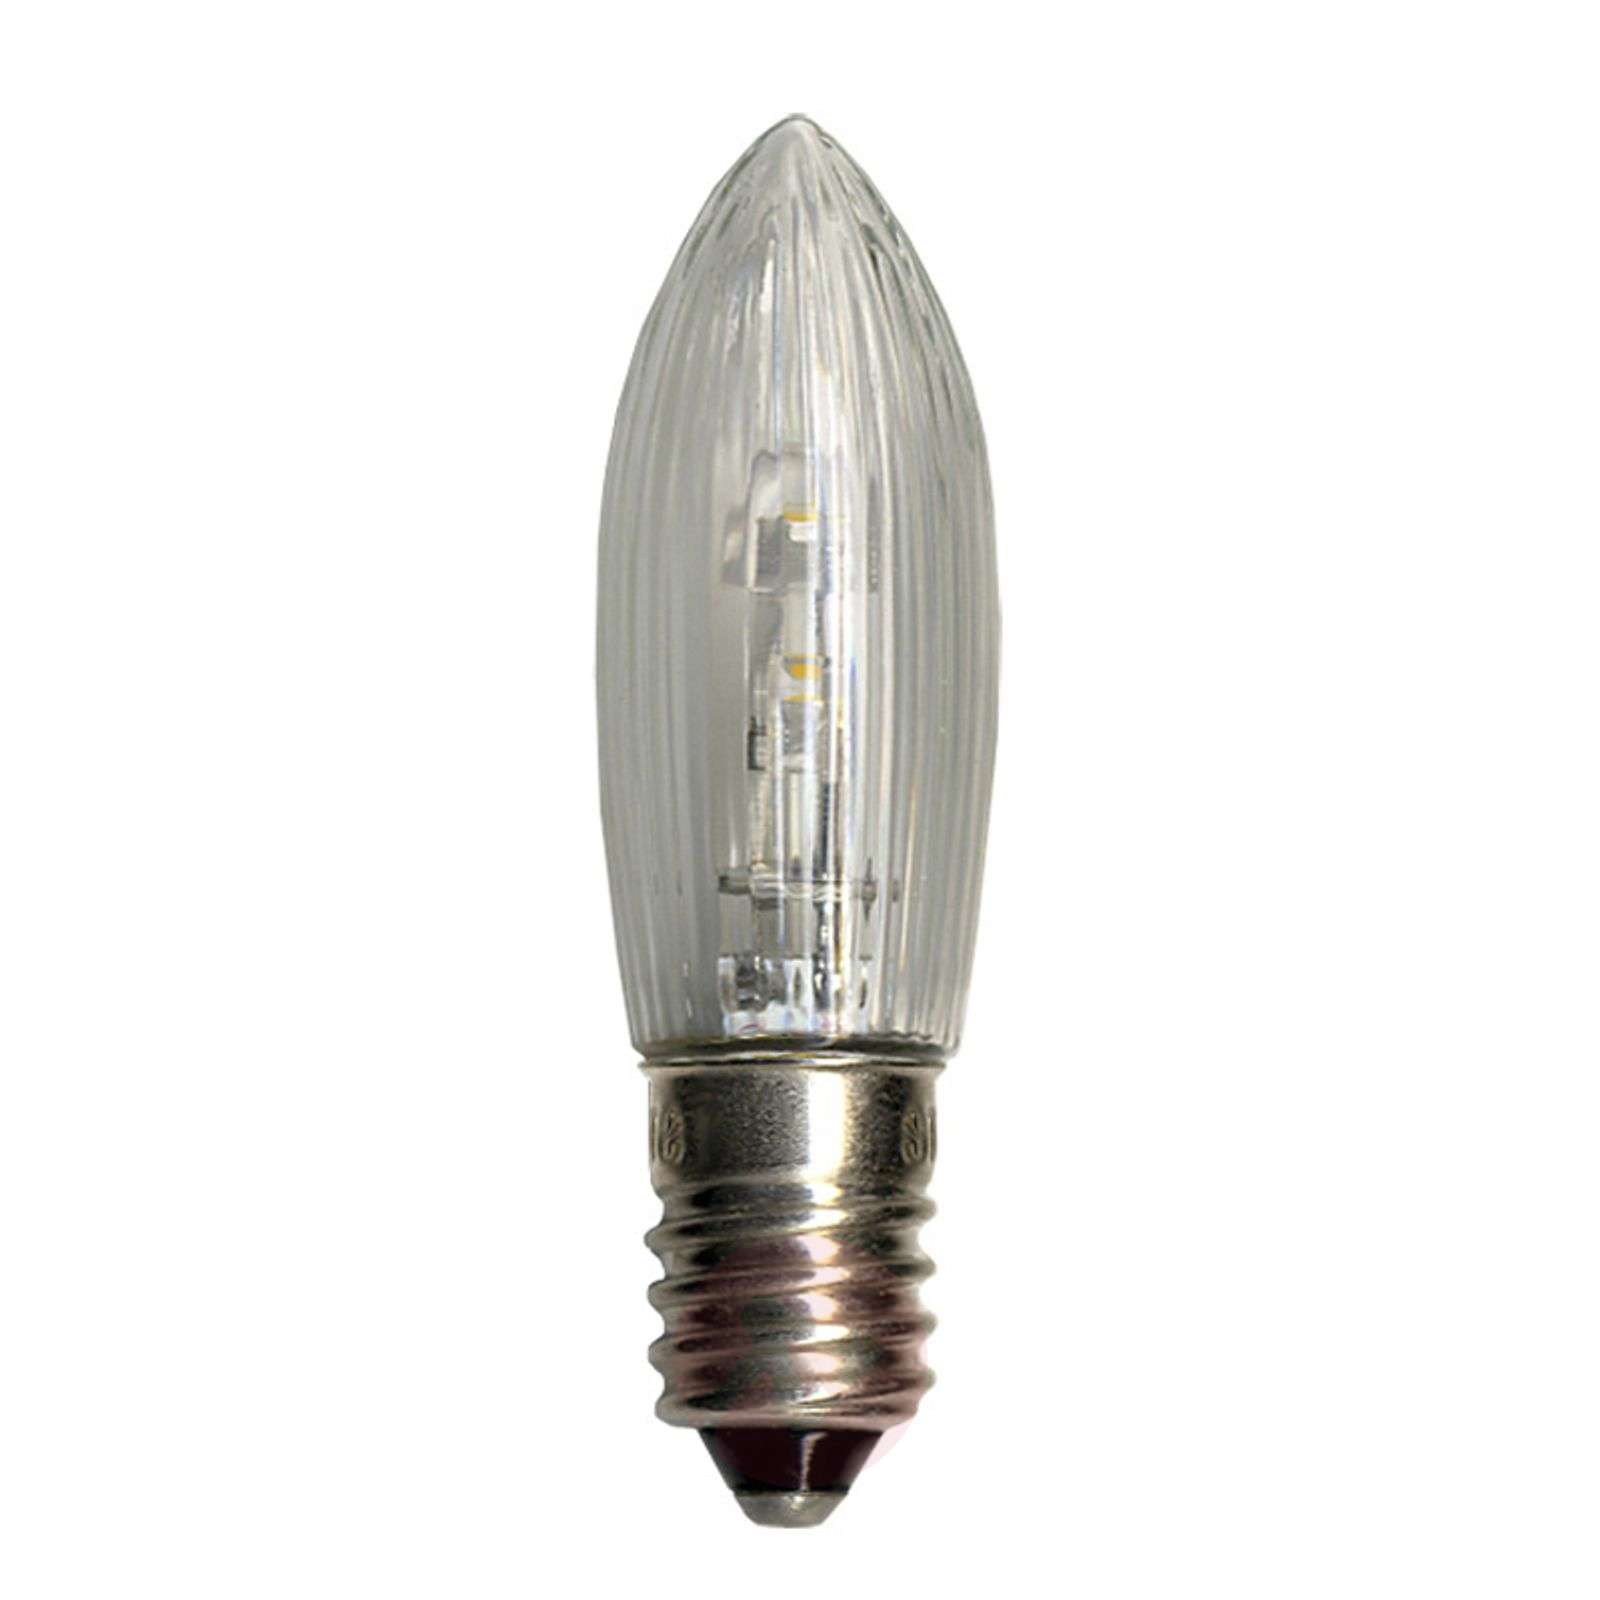 3 LED E10 de rechange bougie 0,2W 10-55V-1522312-01